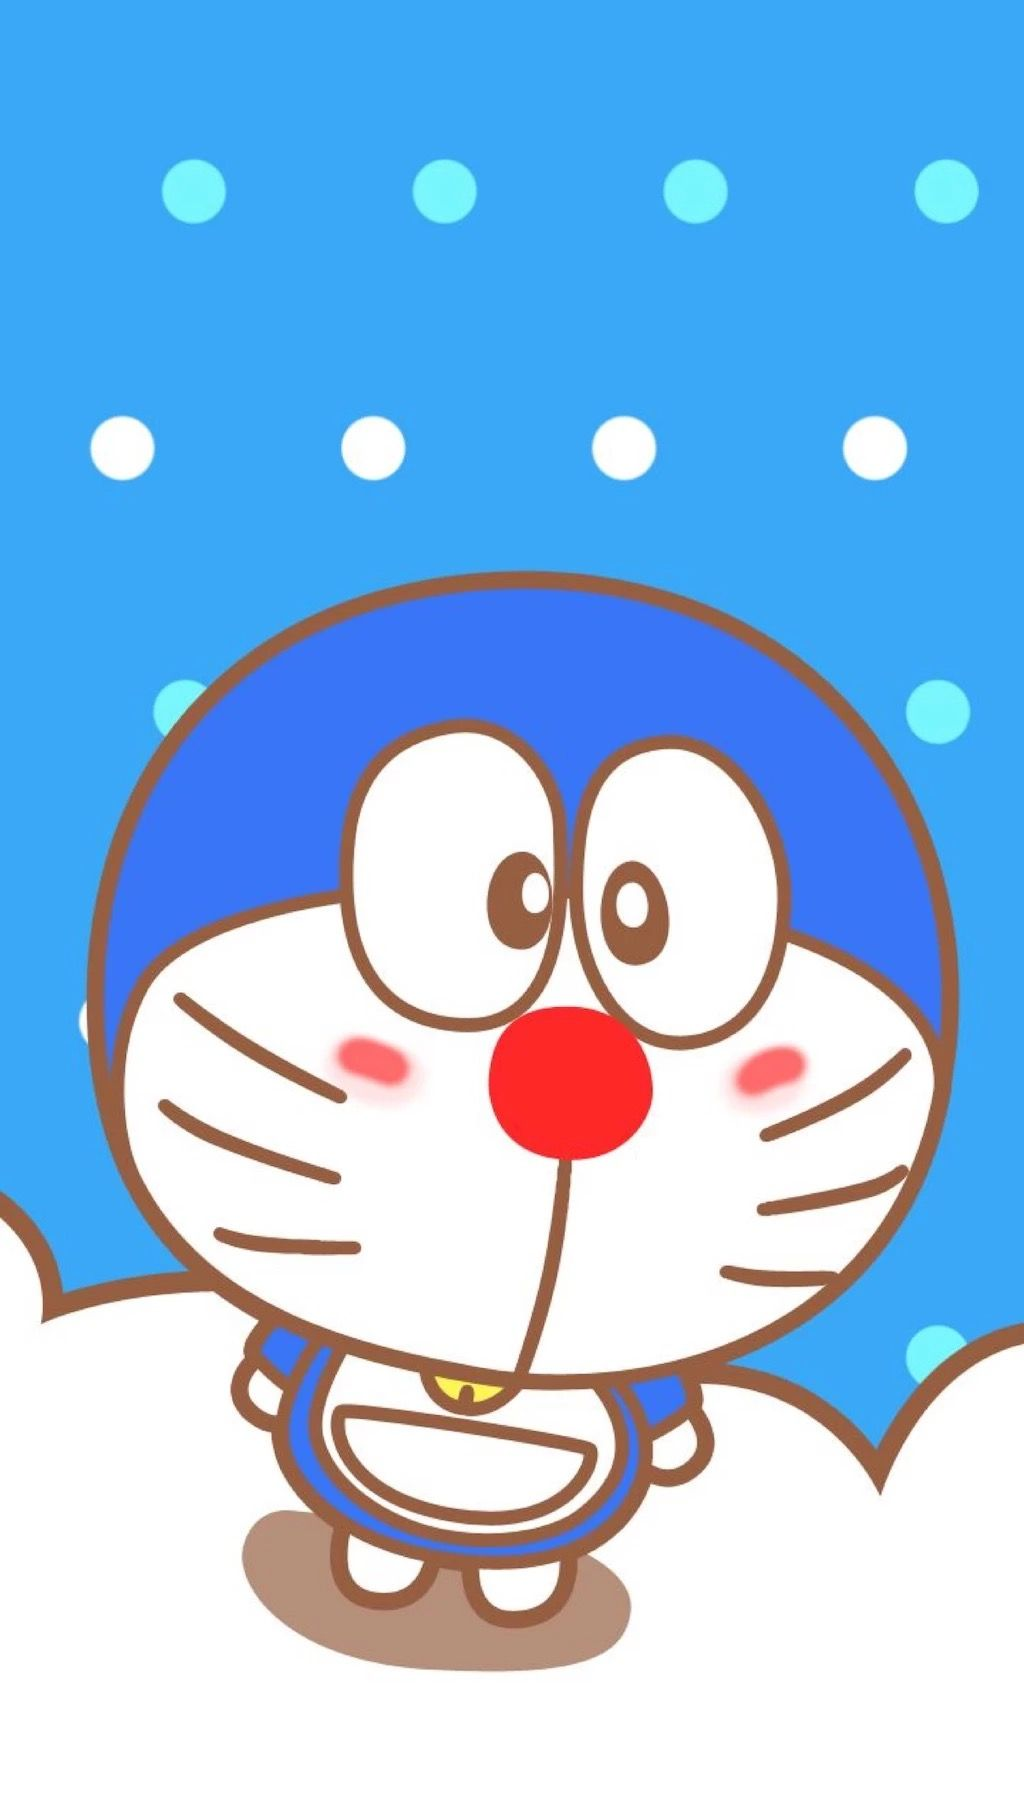 Best Doraemon Wallpaper Image HD Picturez